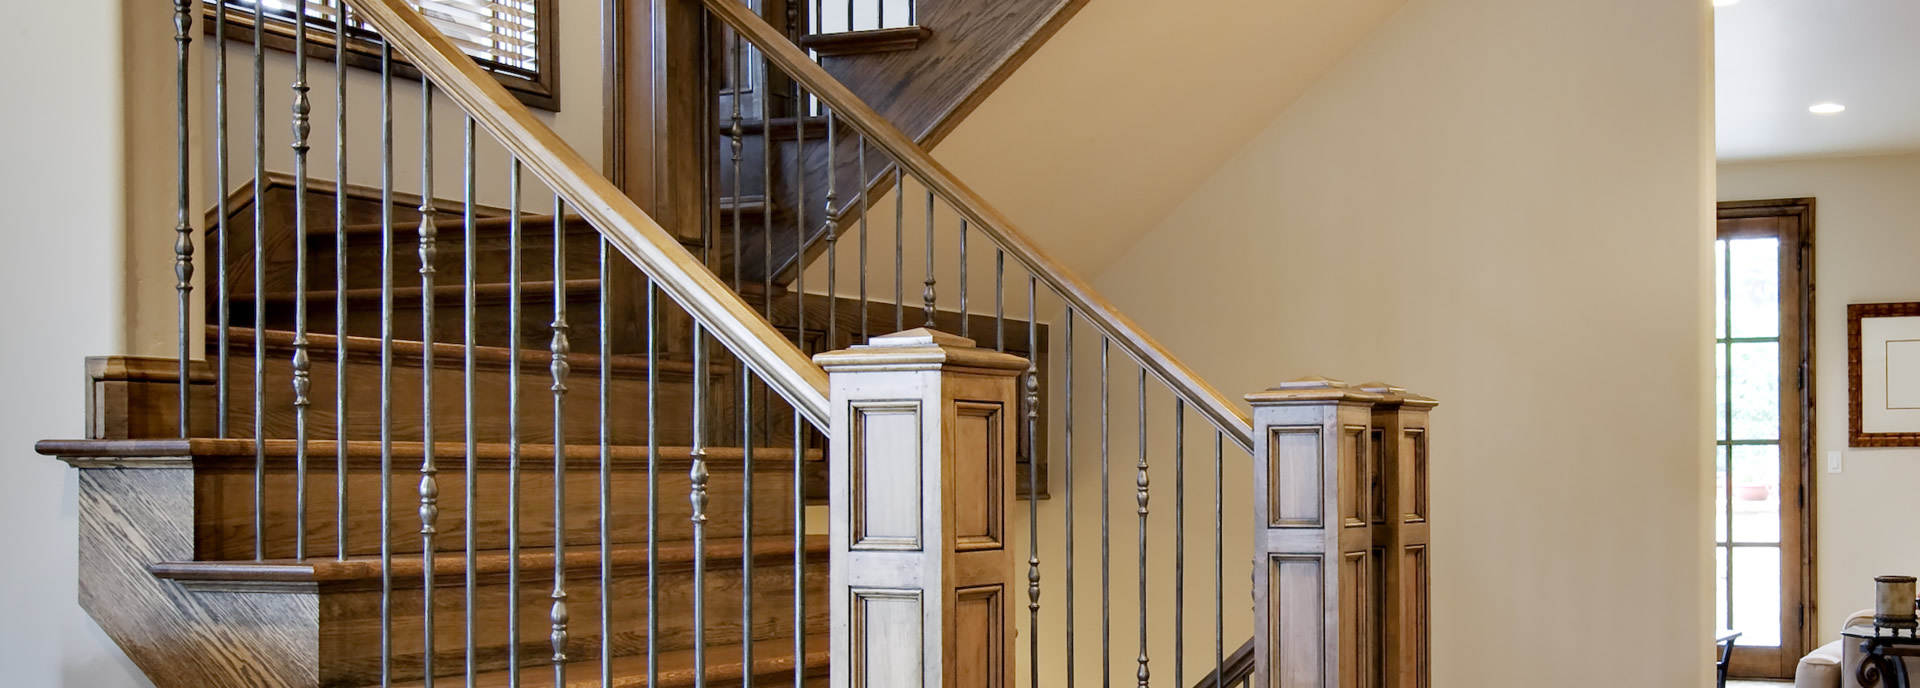 Stainless Steel Handrails: Strength And Sophistication Alpharetta, GA